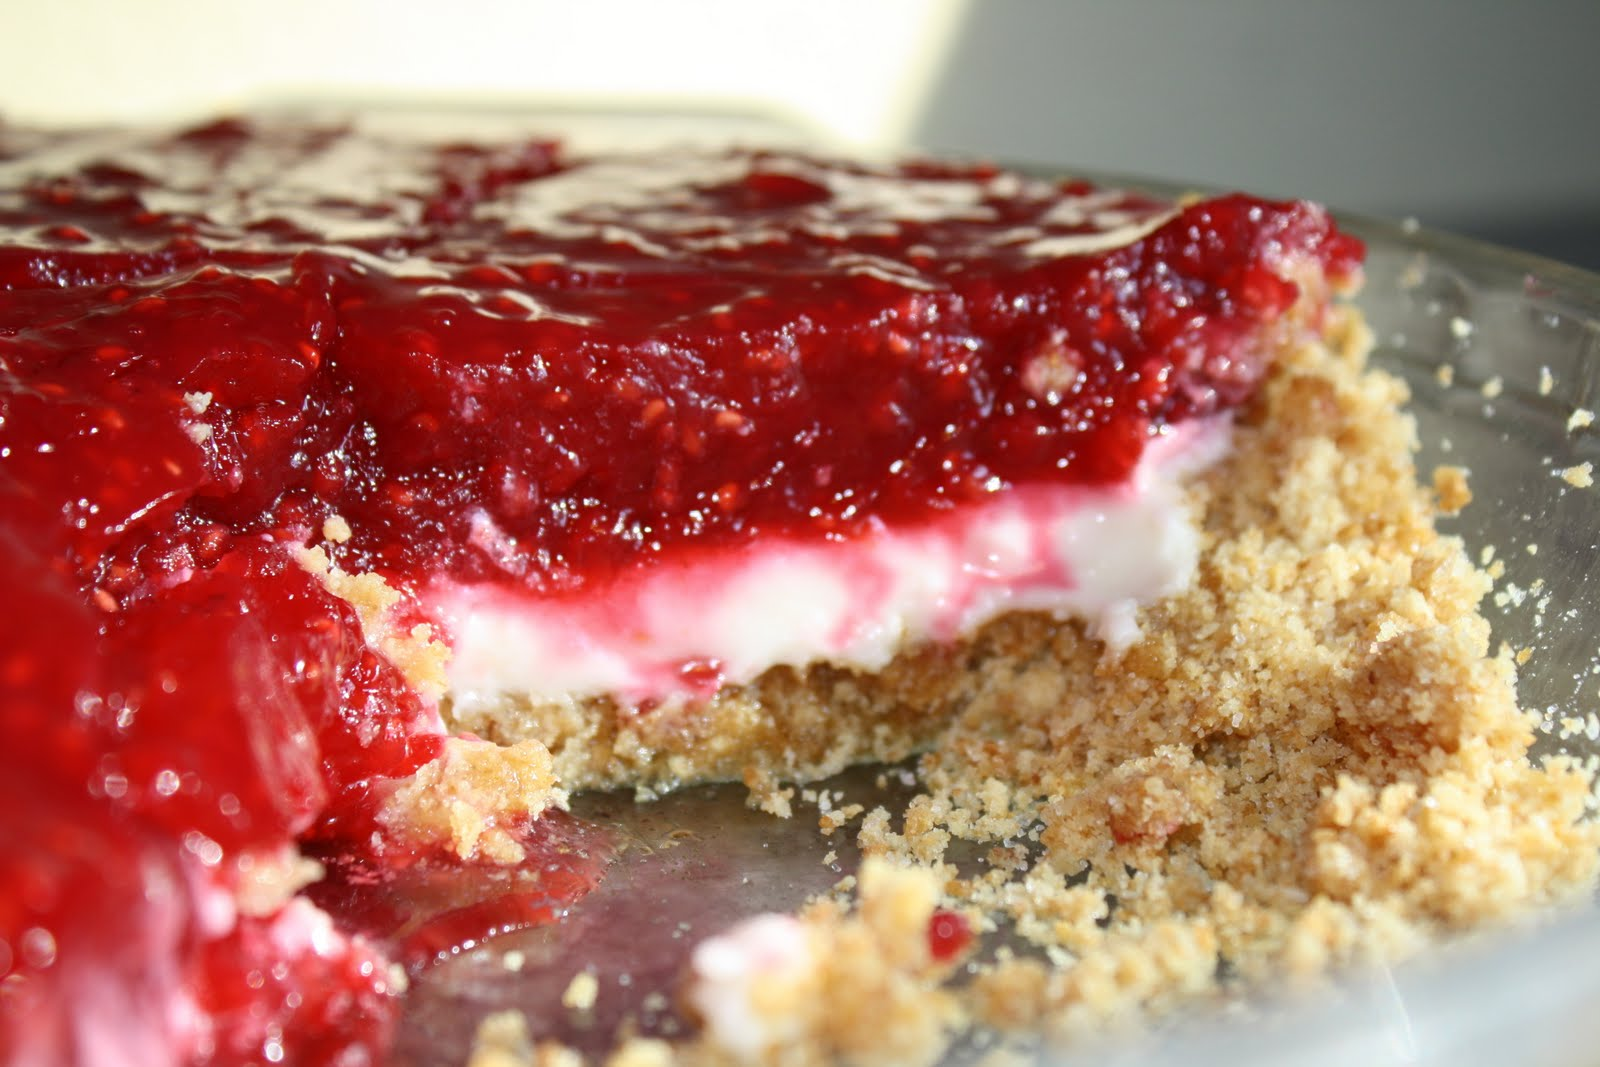 dubs cafe: Raspberry Cream pie with Graham Cracker Crust